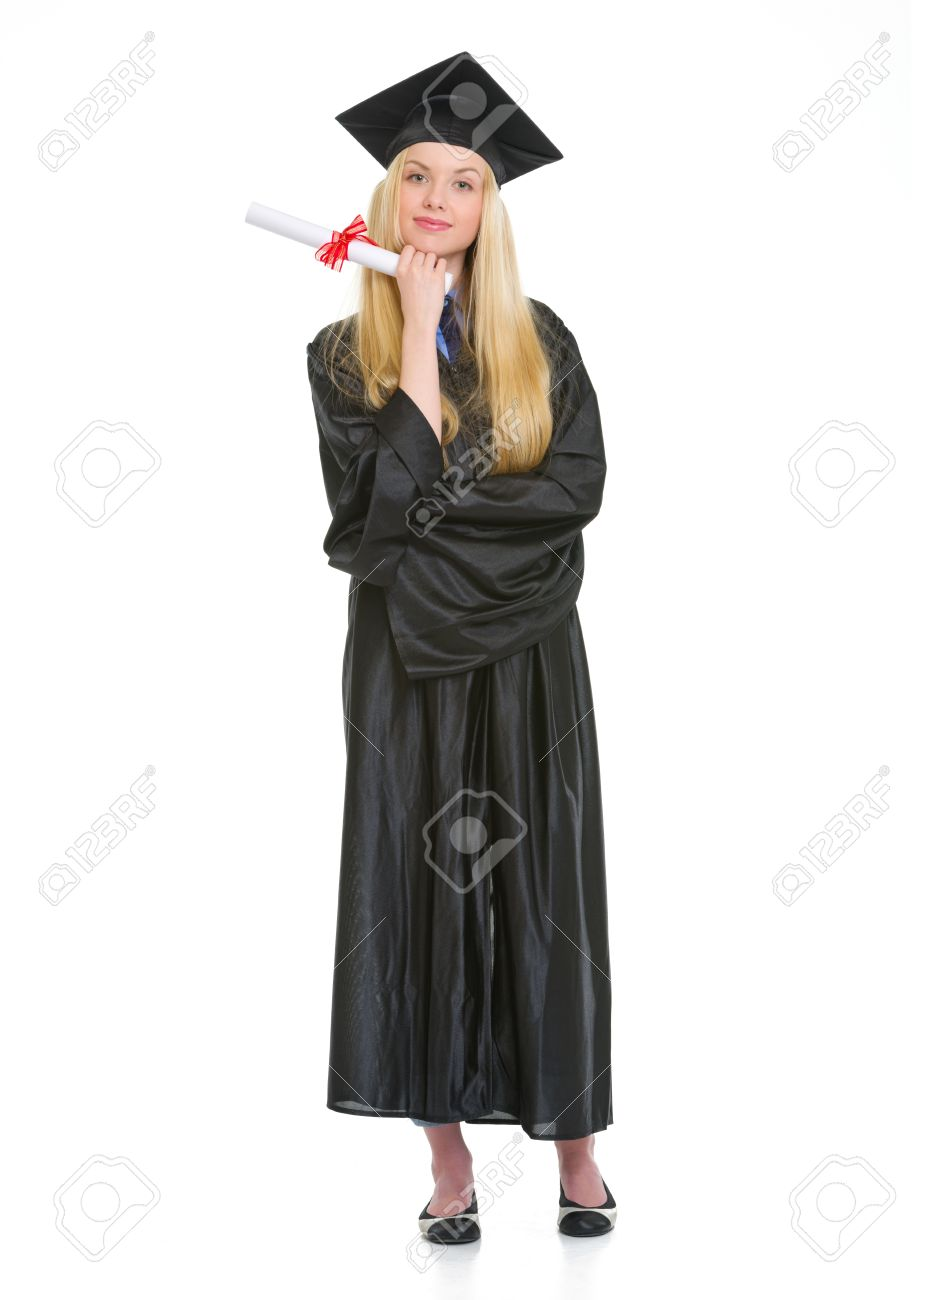 Full Length Portrait Of Young Woman In Graduation Gown With ...